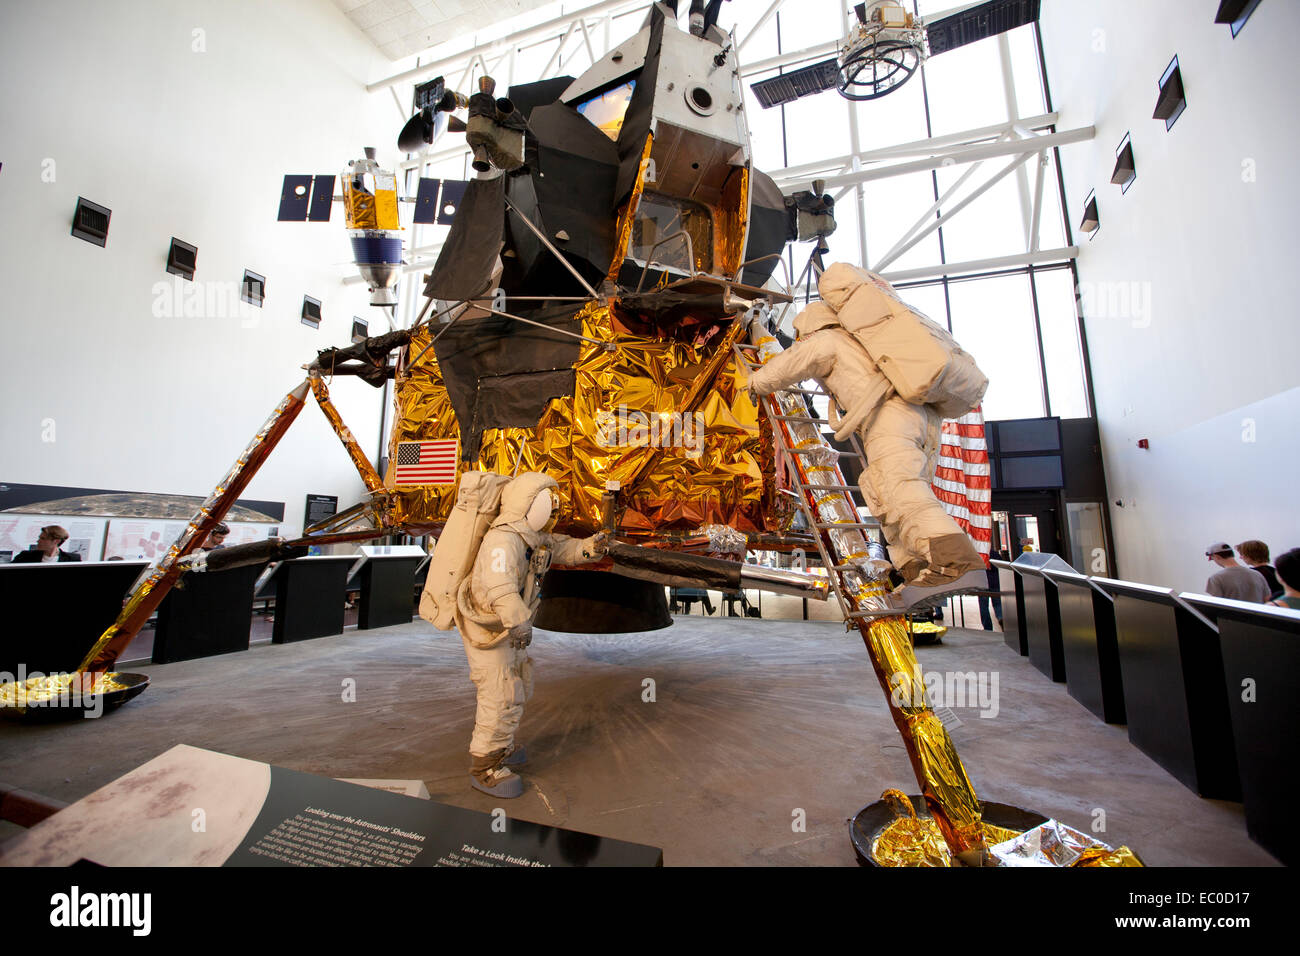 WASHINGTON D.C. - MAY 24, 2014:The Apollo Lunar Module (LM) was a two-stage vehicle designed by Grumman to ferry - Stock Image